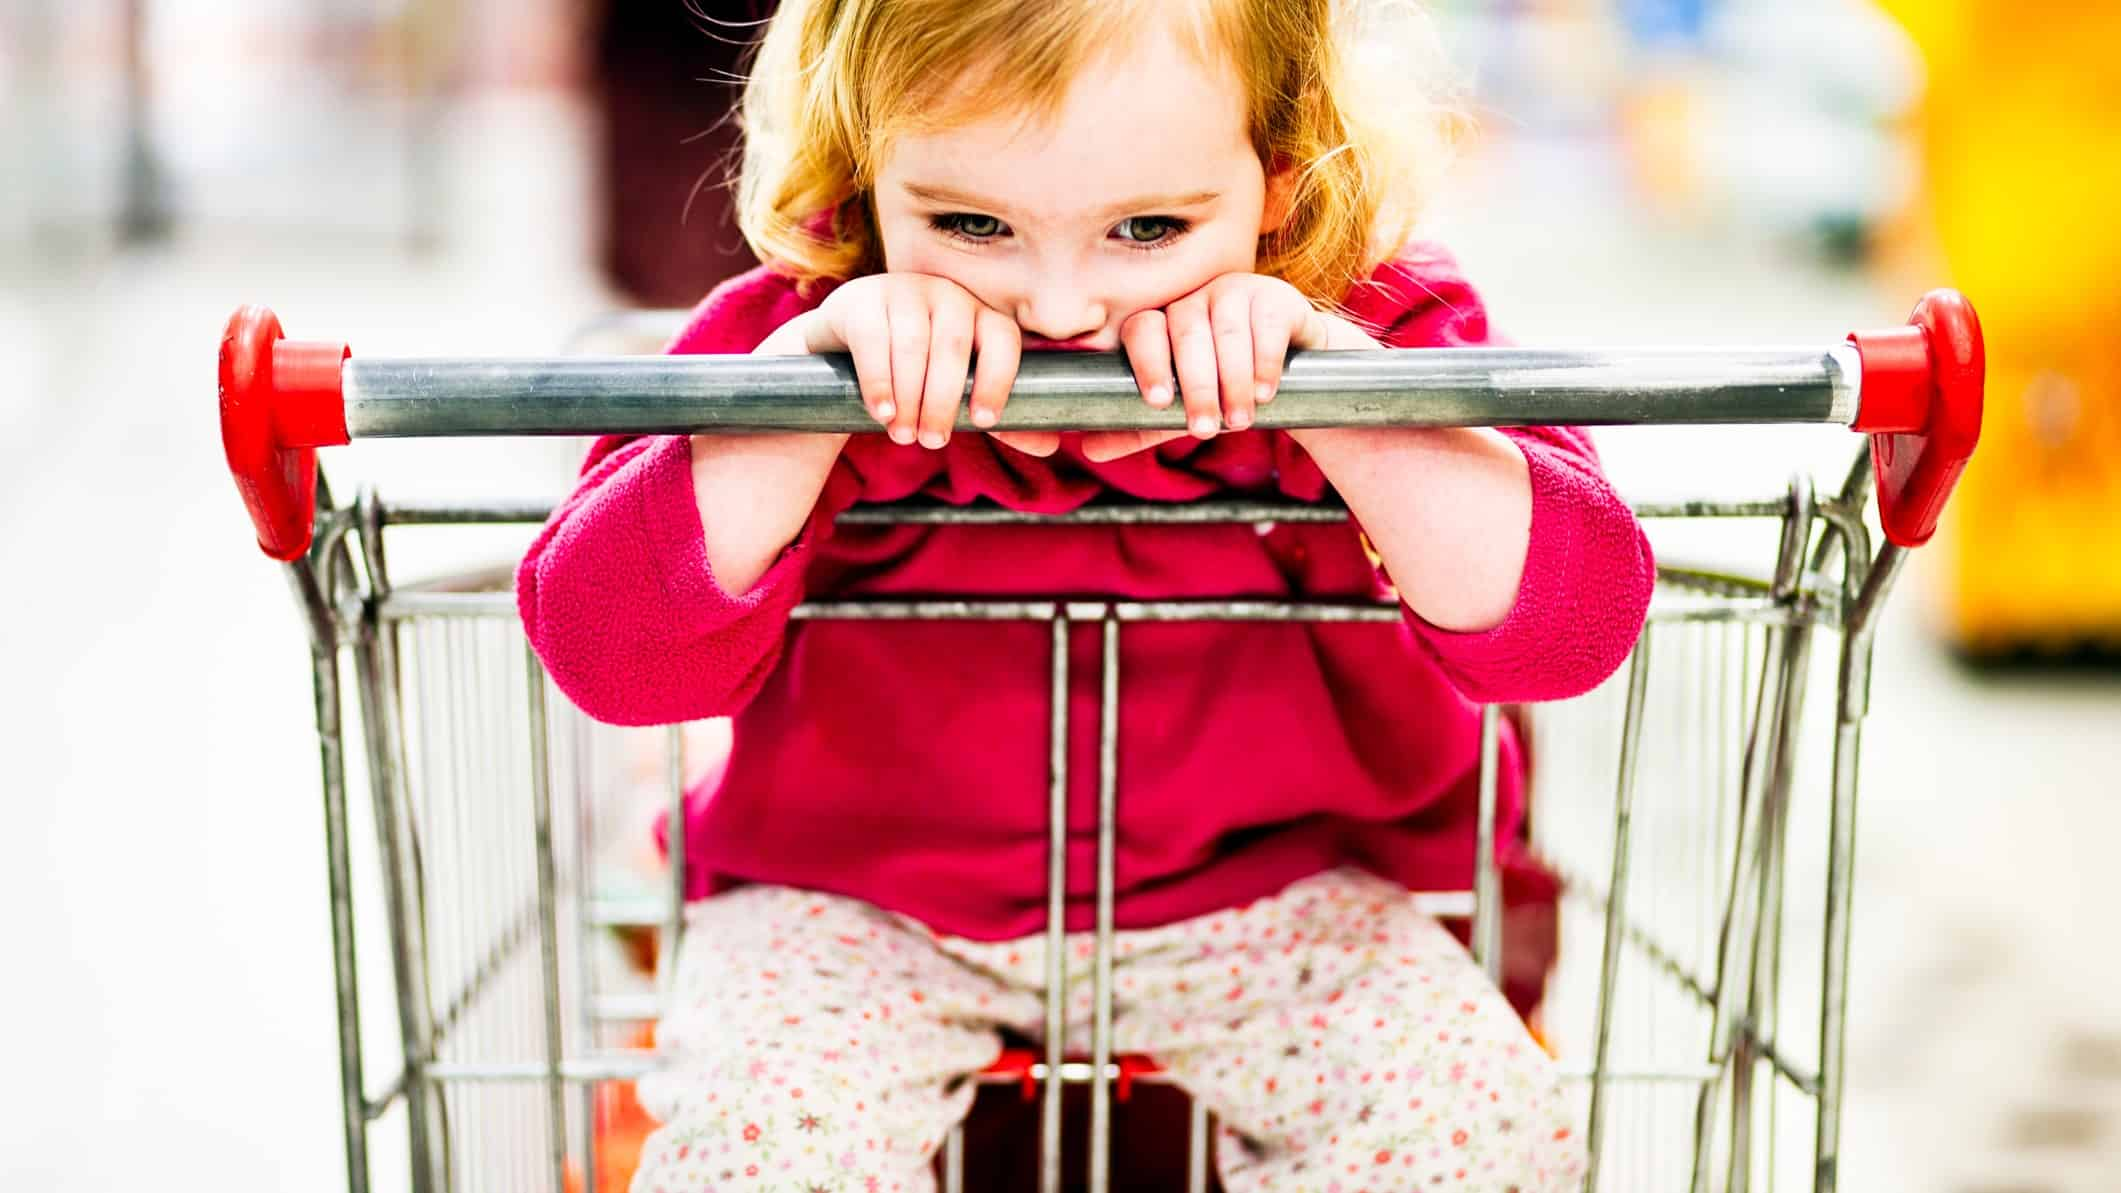 A sad little girl sits in a supermarket trolley, indicating a decline in share market price